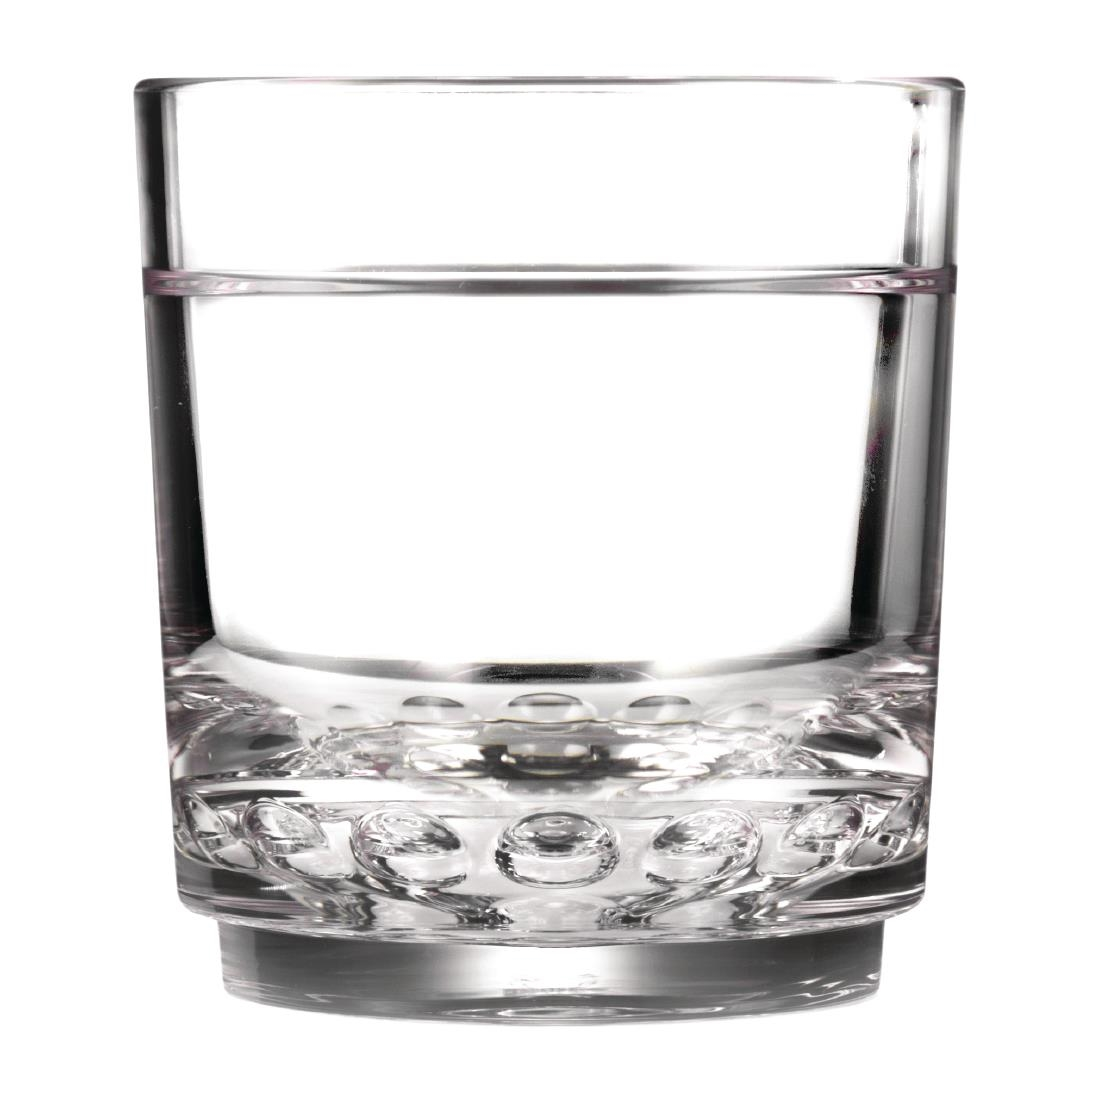 Image of Drinique Elite Tritan Tumblers Clear 200ml (Pack of 24) Pack of 24